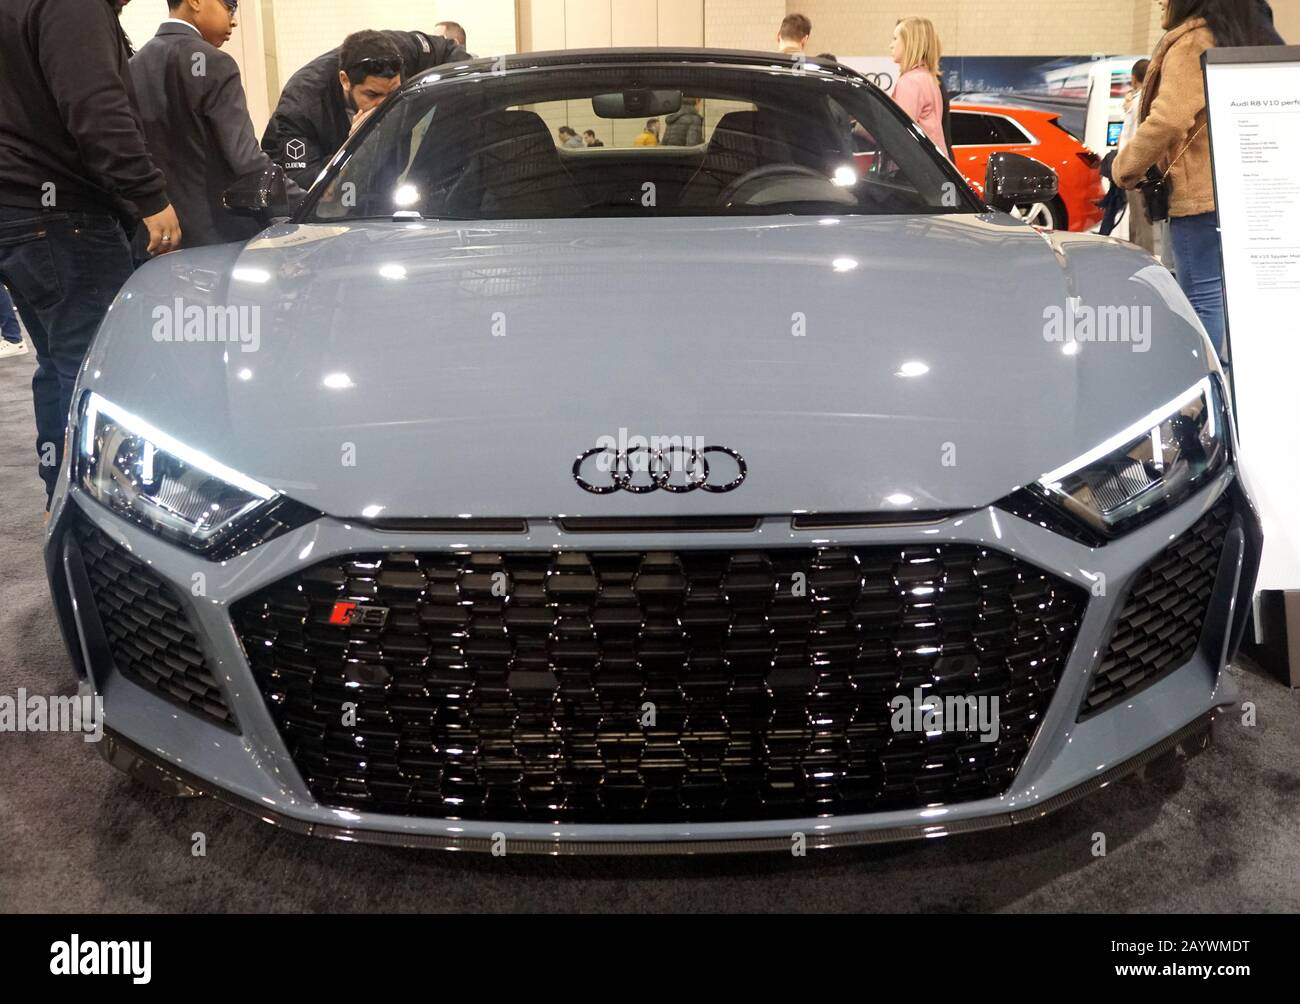 Philadelphia Pennsylvania U S A February 9 2020 The Front View Of The Pearl White Color Of 2020 Audi R8 V10 Performance Spyder Quattro Sports C Stock Photo Alamy